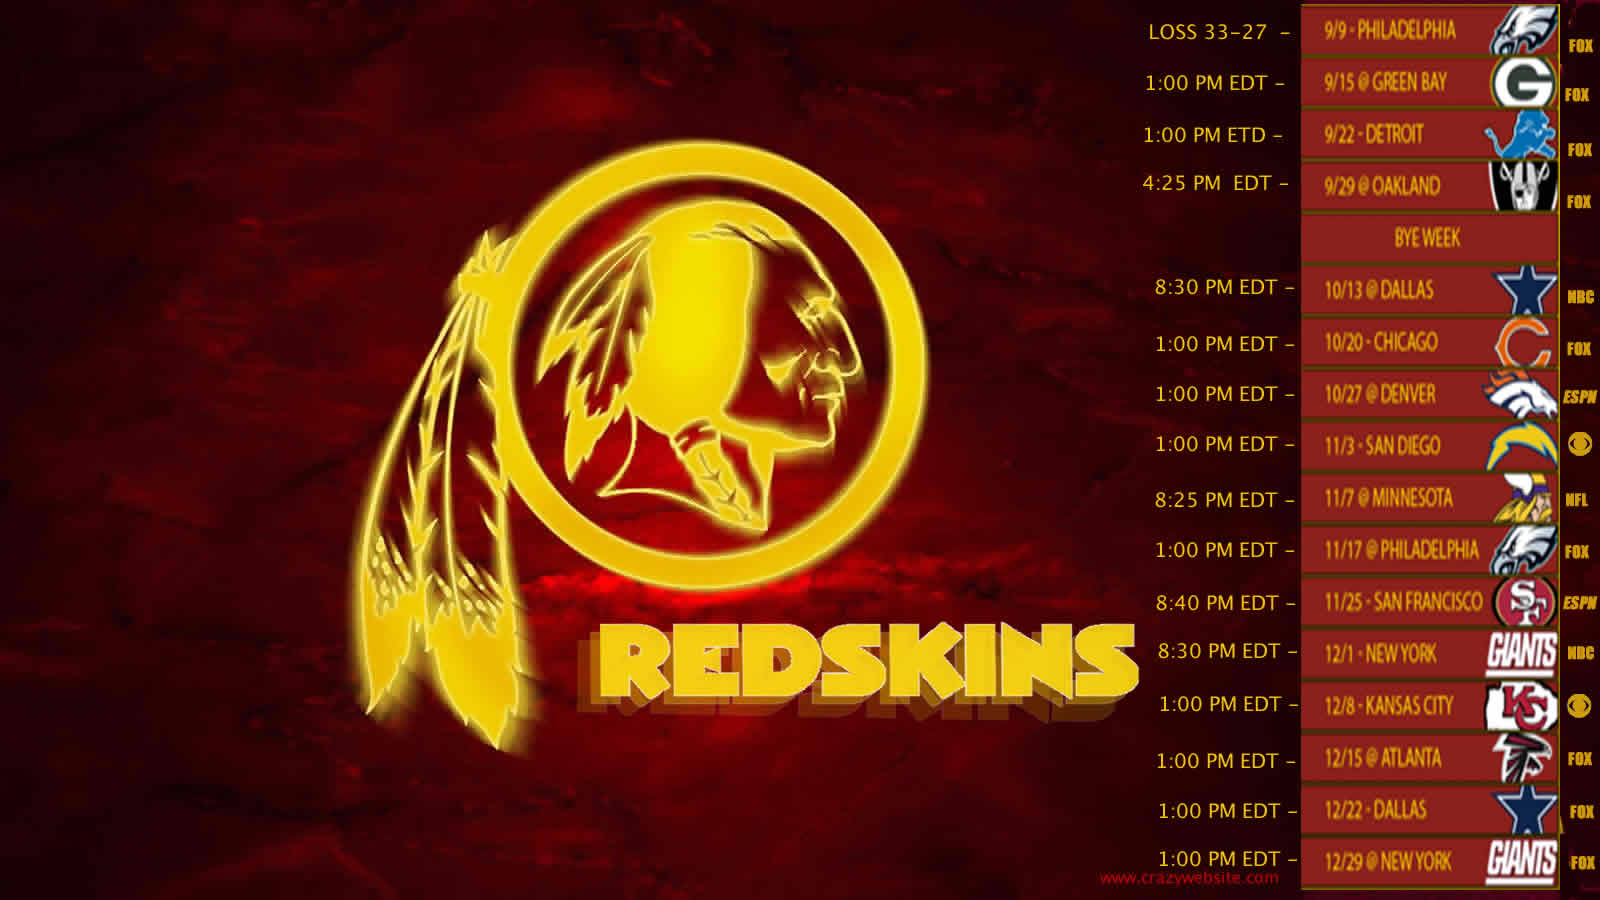 Best-of-Washington-Redskins-Full-HD-Pictures-%C3%97-Redskins-Adorable-Wal-wallpaper-wp3403193